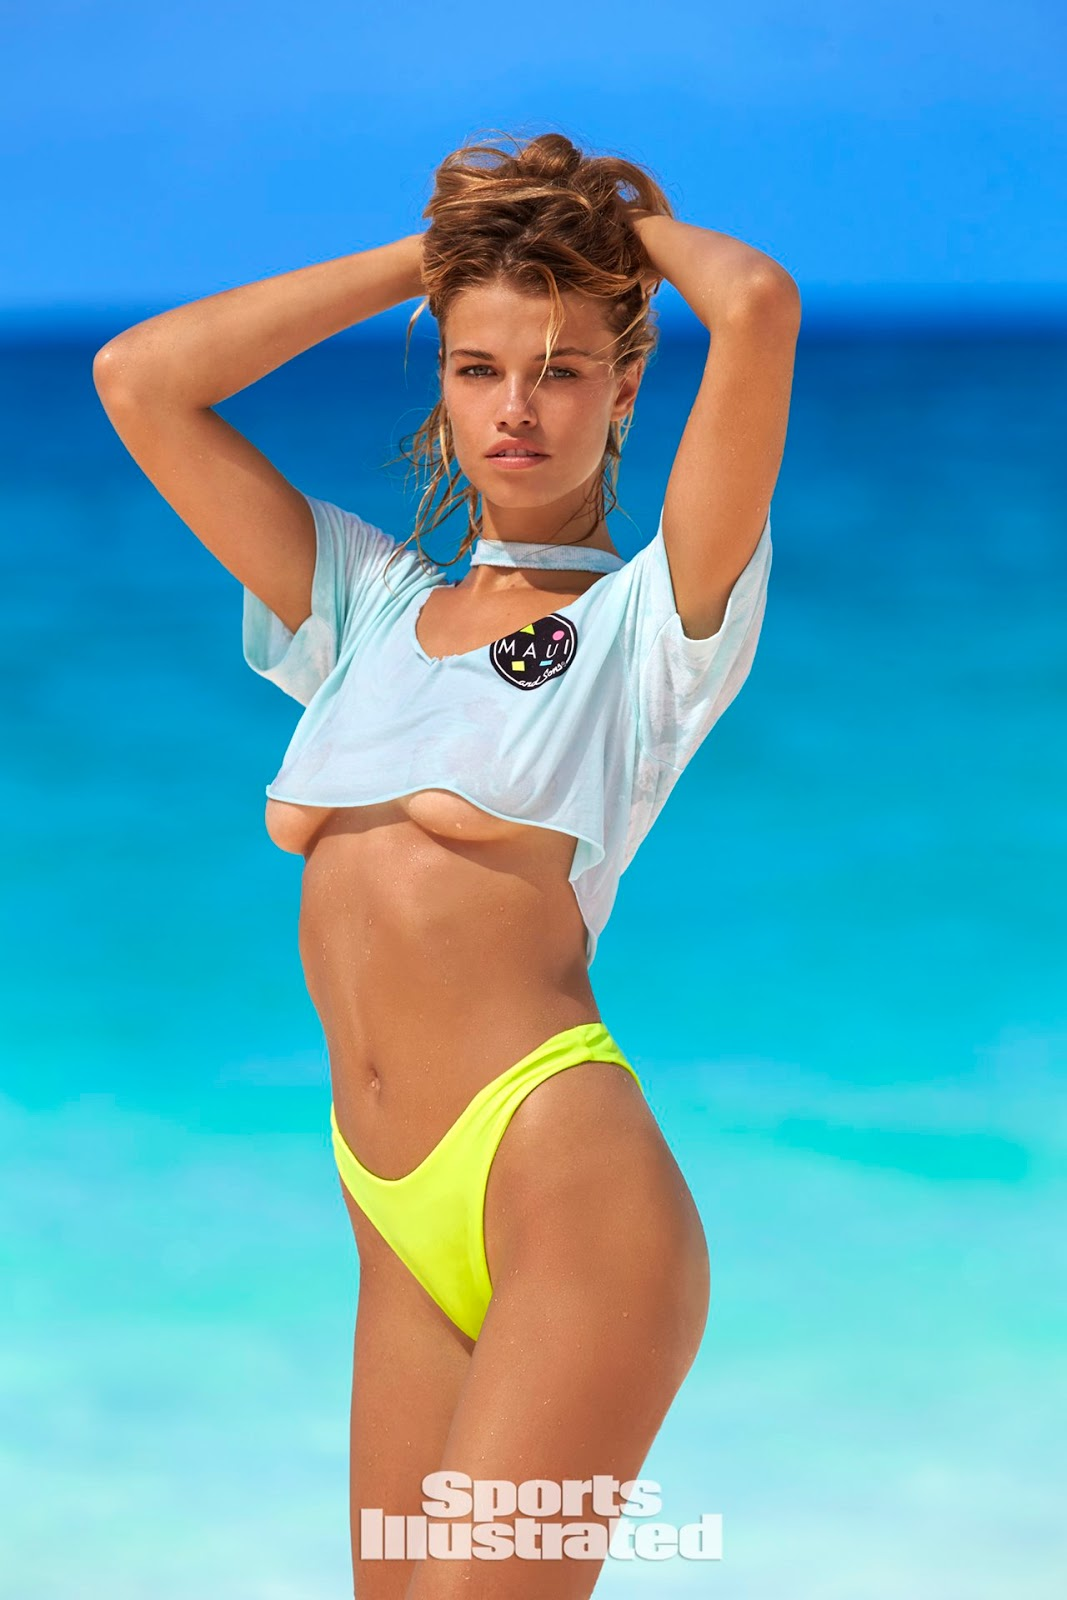 Hailey Clauson 2018 SI Swimsuit Photos